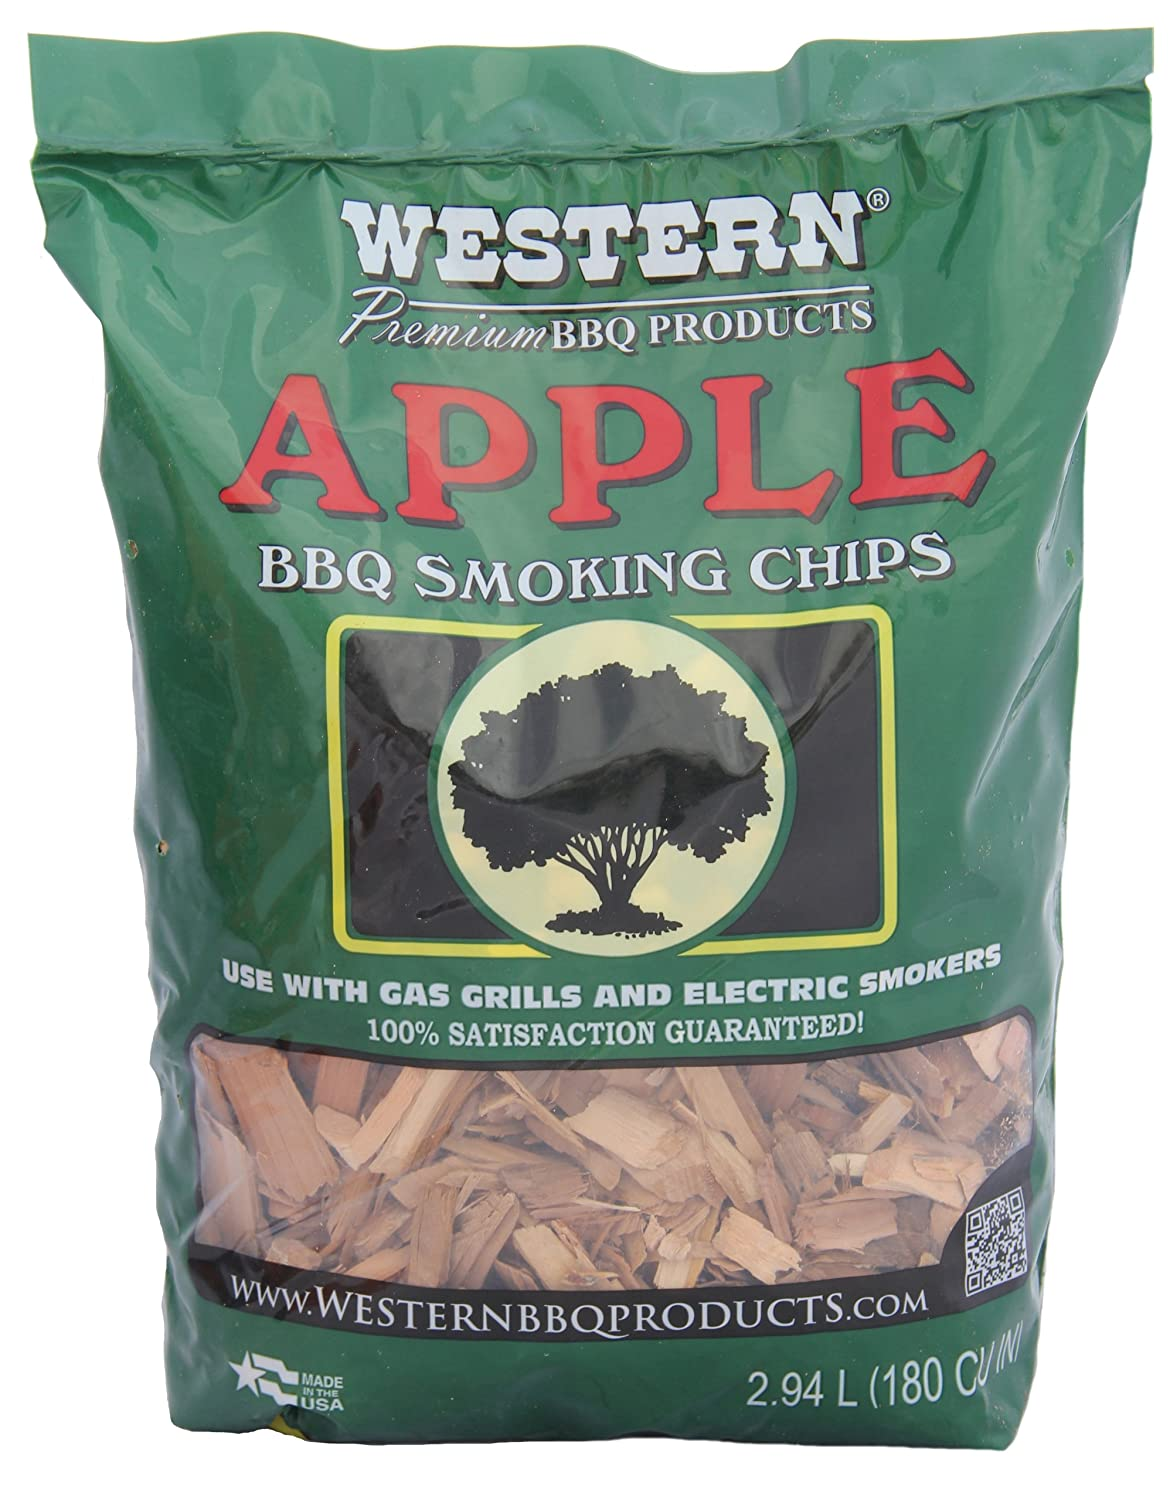 Western Wood Chips ~ Western apple bbq smoking chips wood smoker grilling